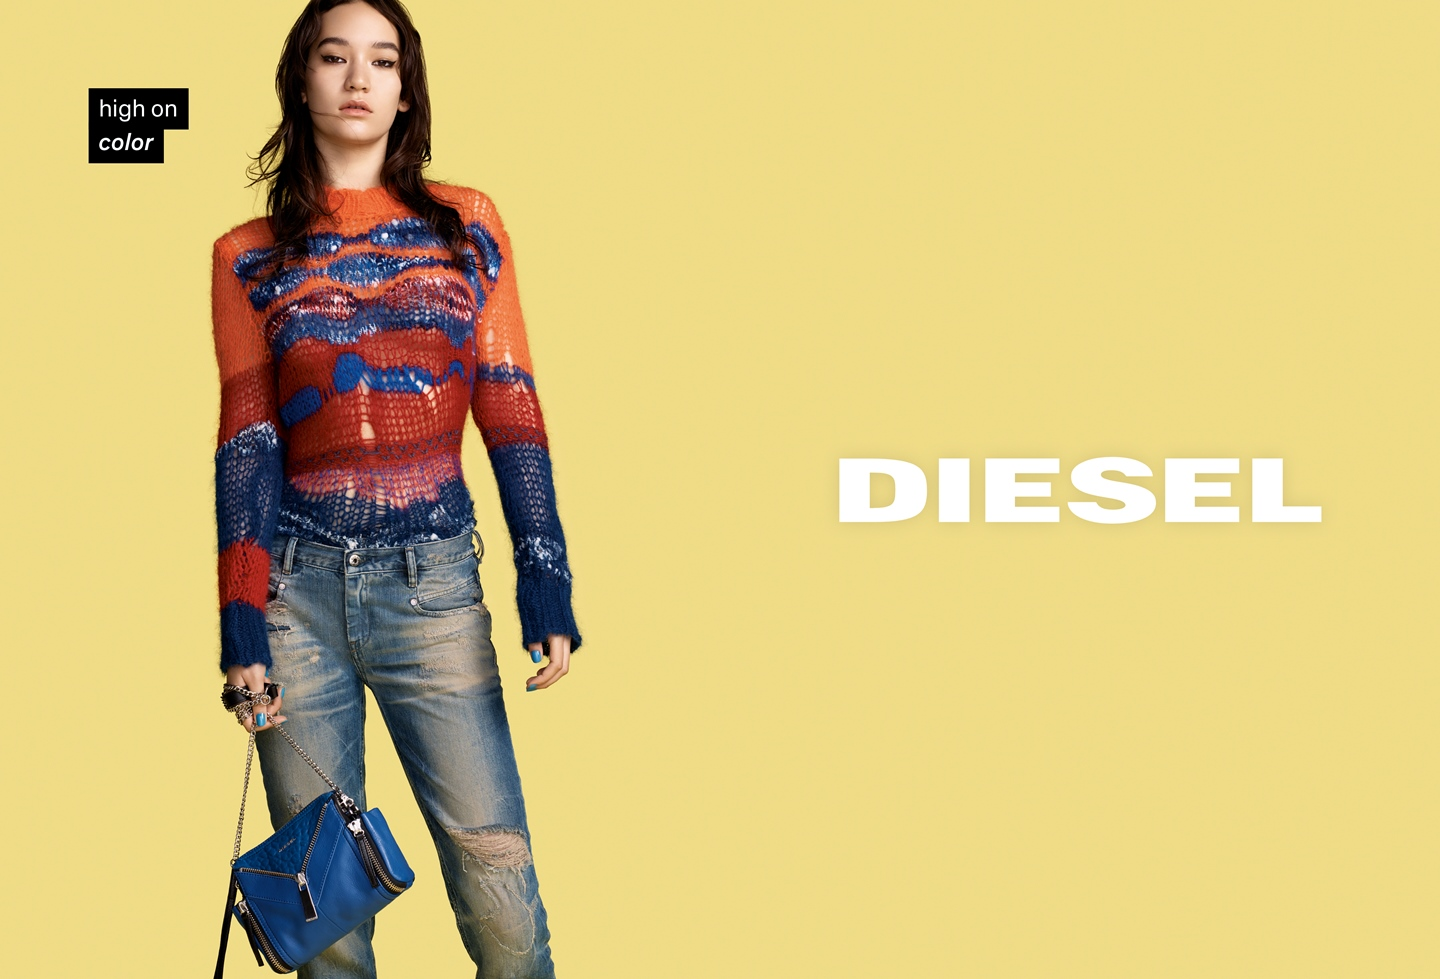 289209_623204_diesel_campaign_fw16_atl_adventure_single_female_dps_highres